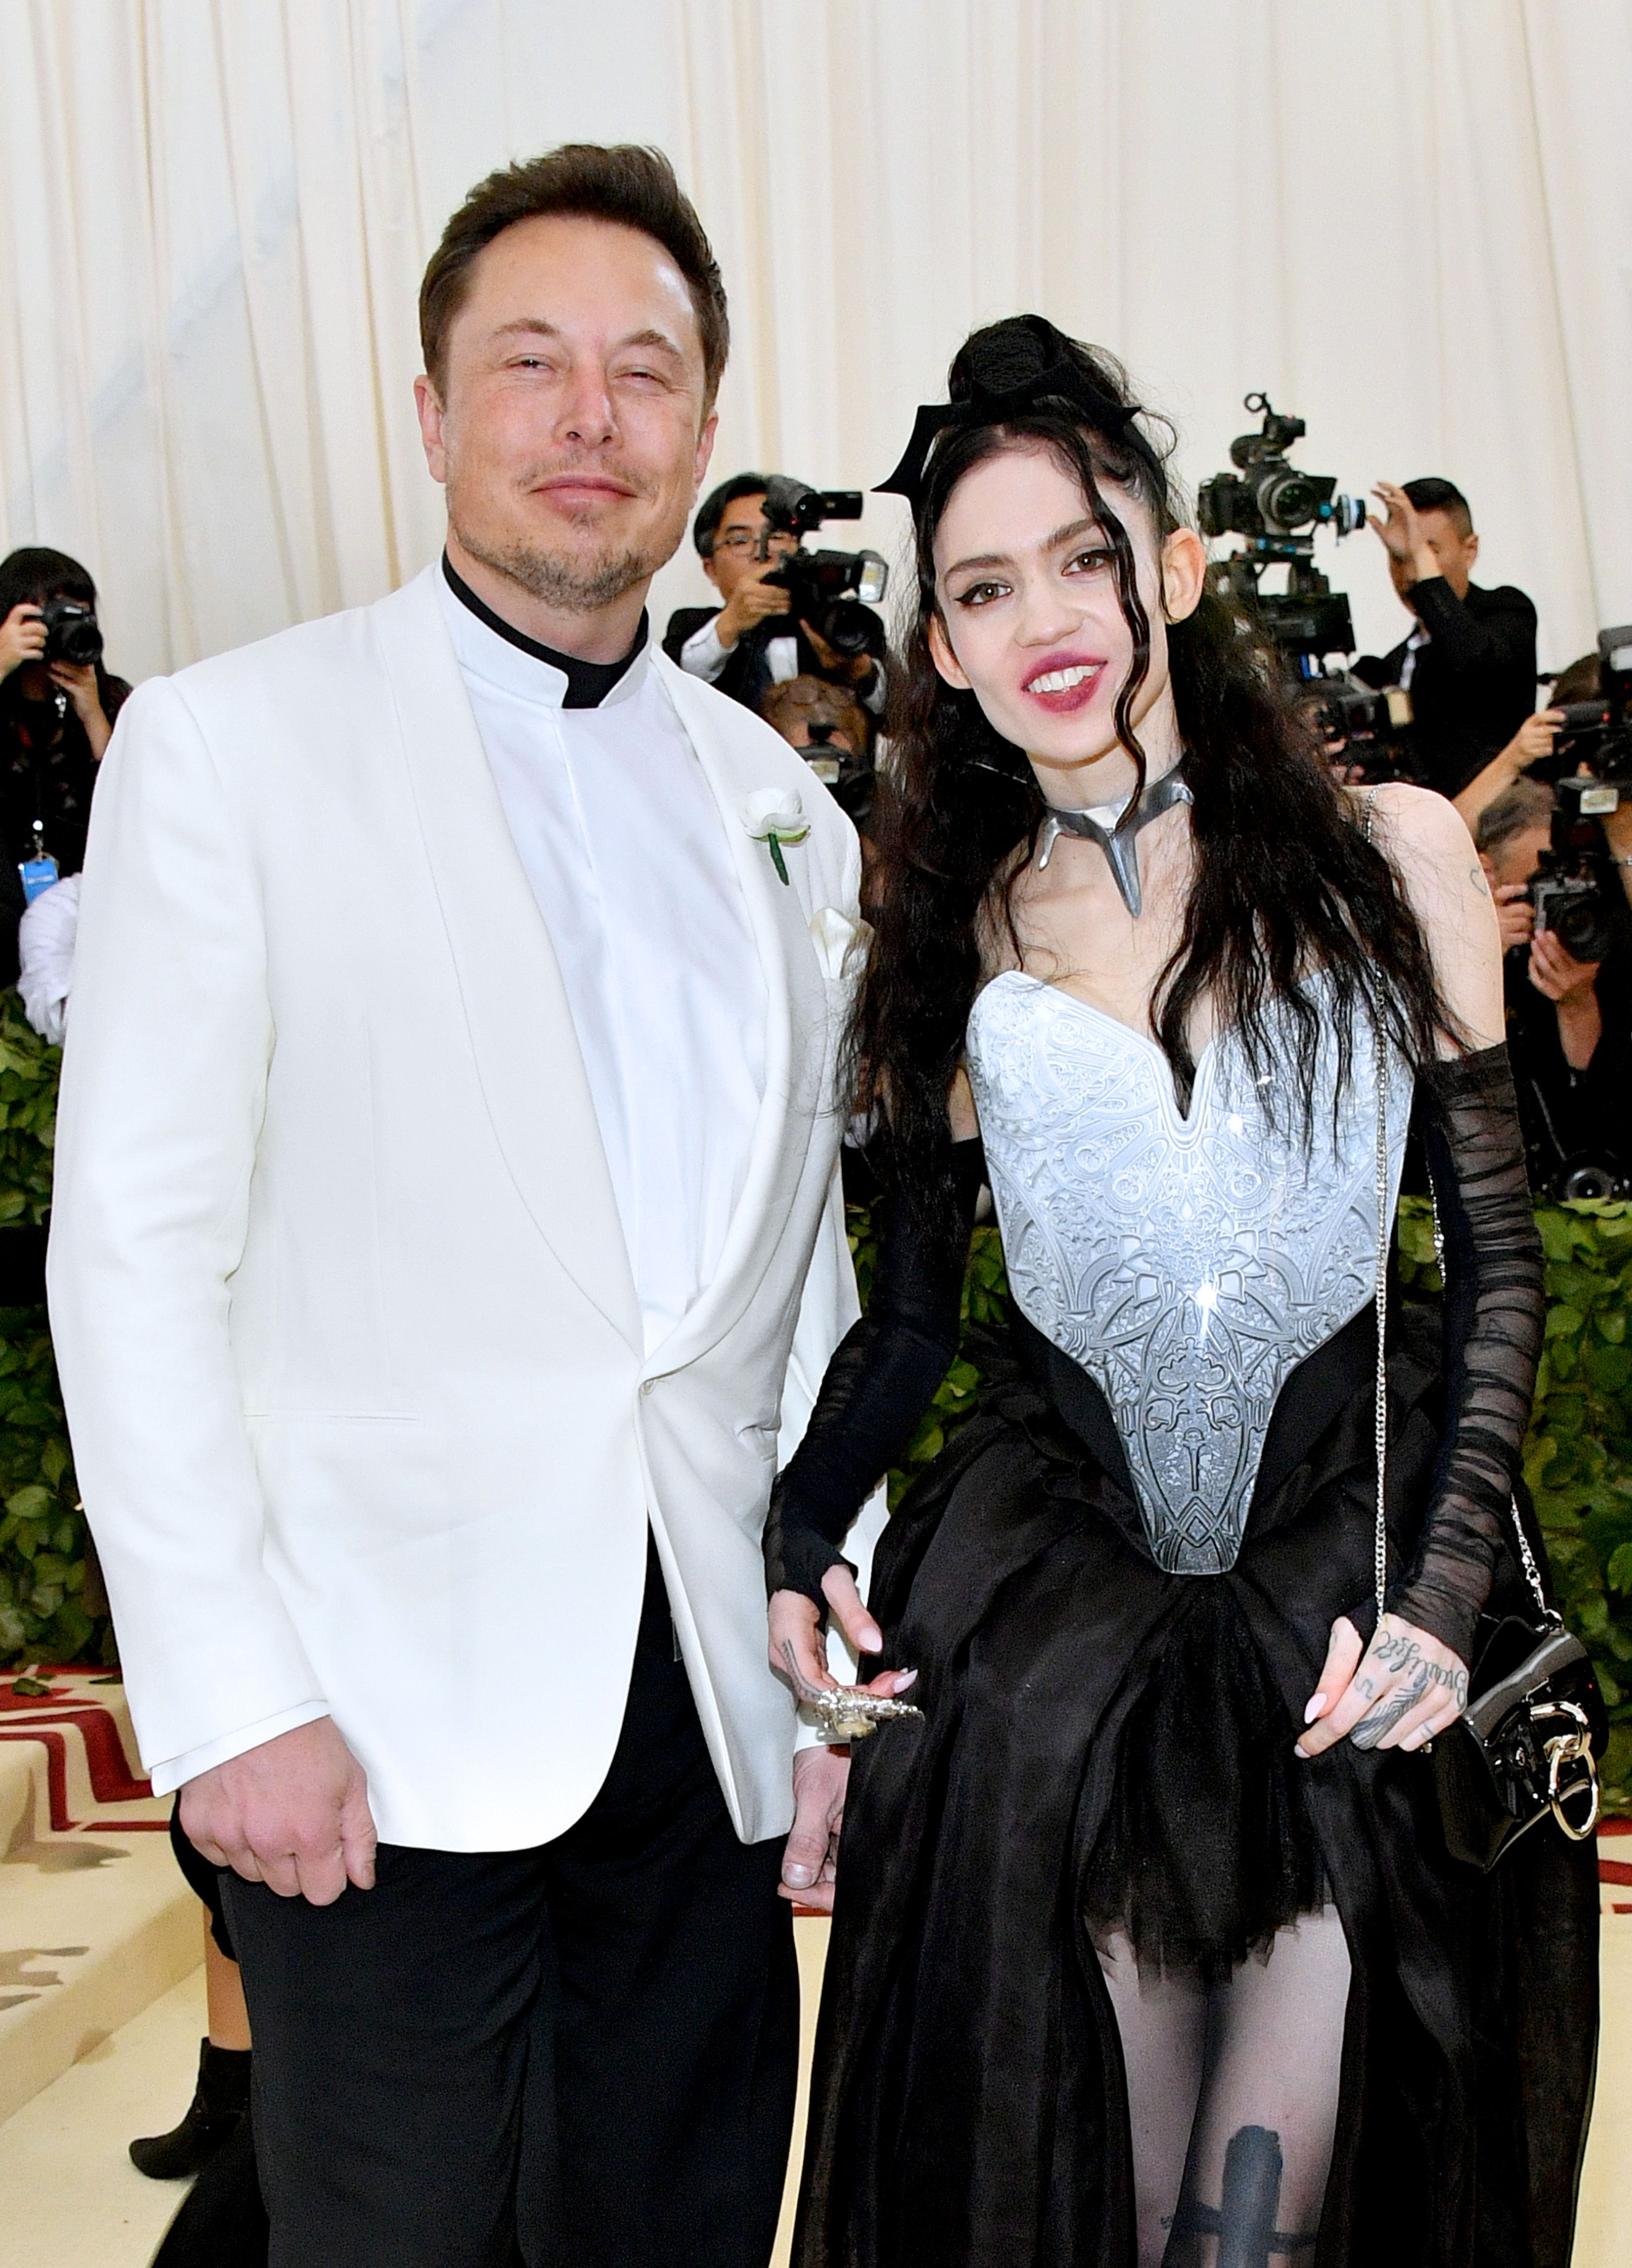 Grimes pictured with partner Elon Musk